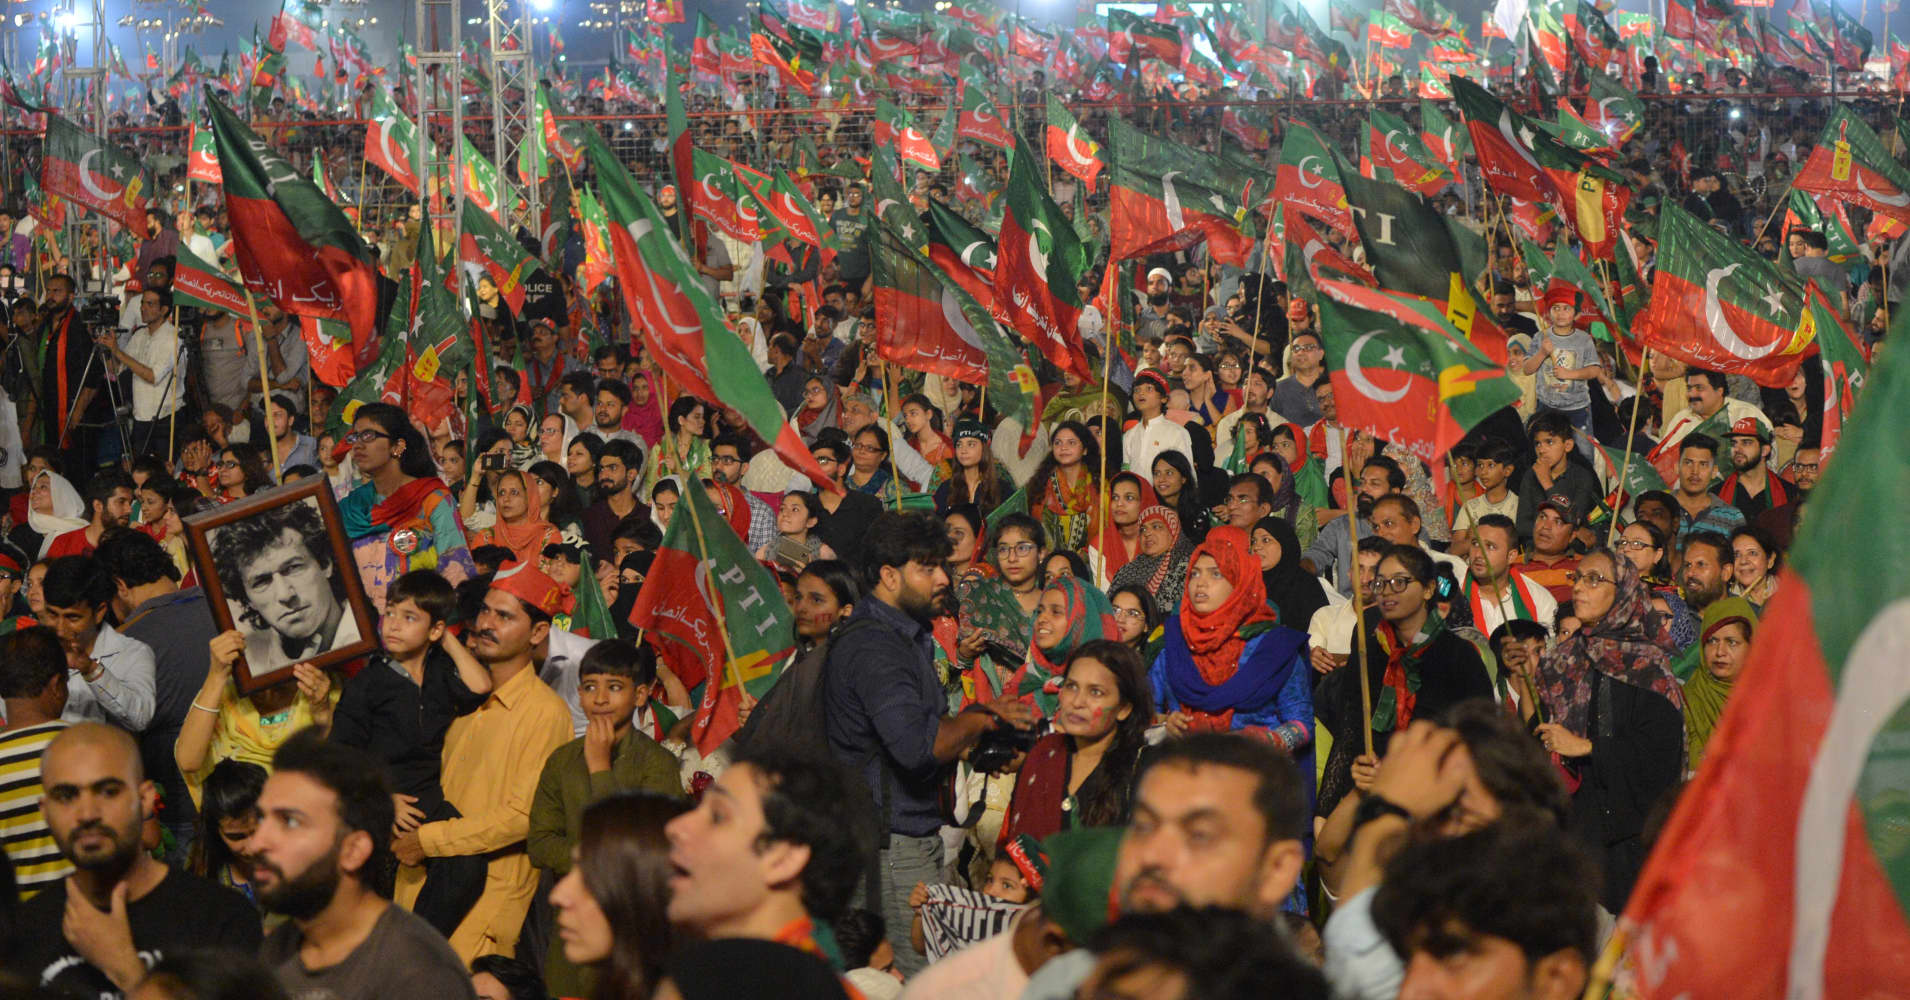 Pakistan elections: Extremist candidates are a 'real setback' for the country